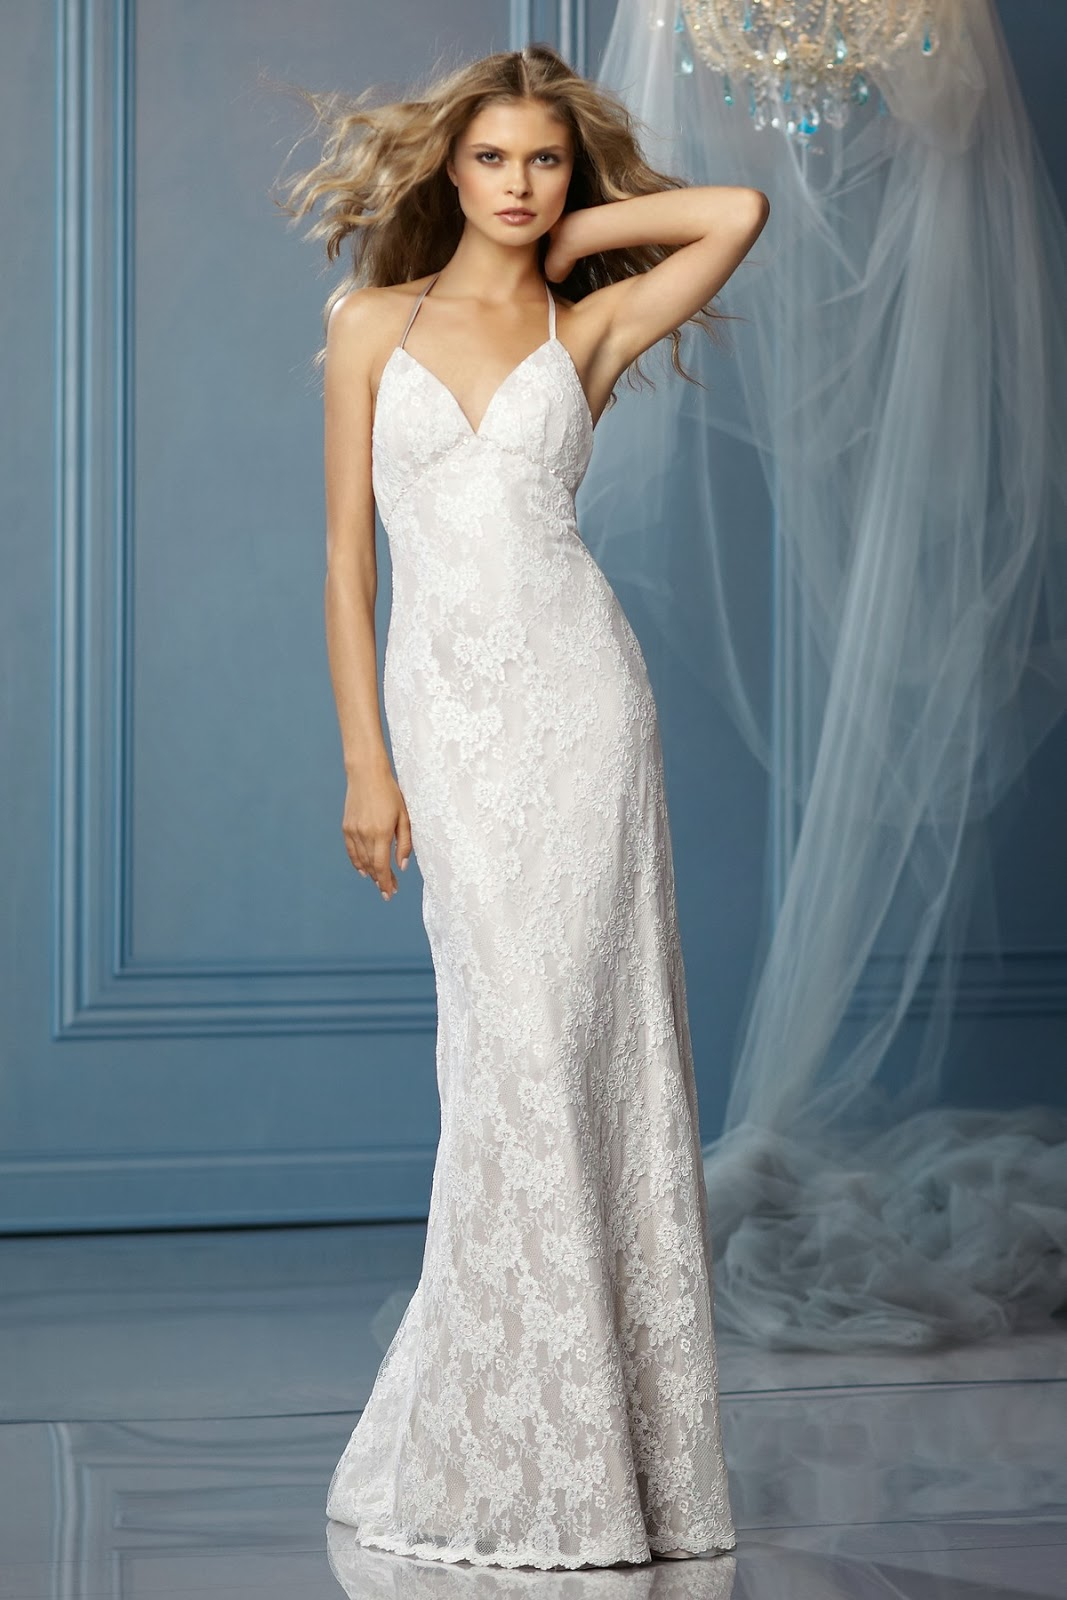 Link Camp Wedding Dress Collection 2013 22 Expensive